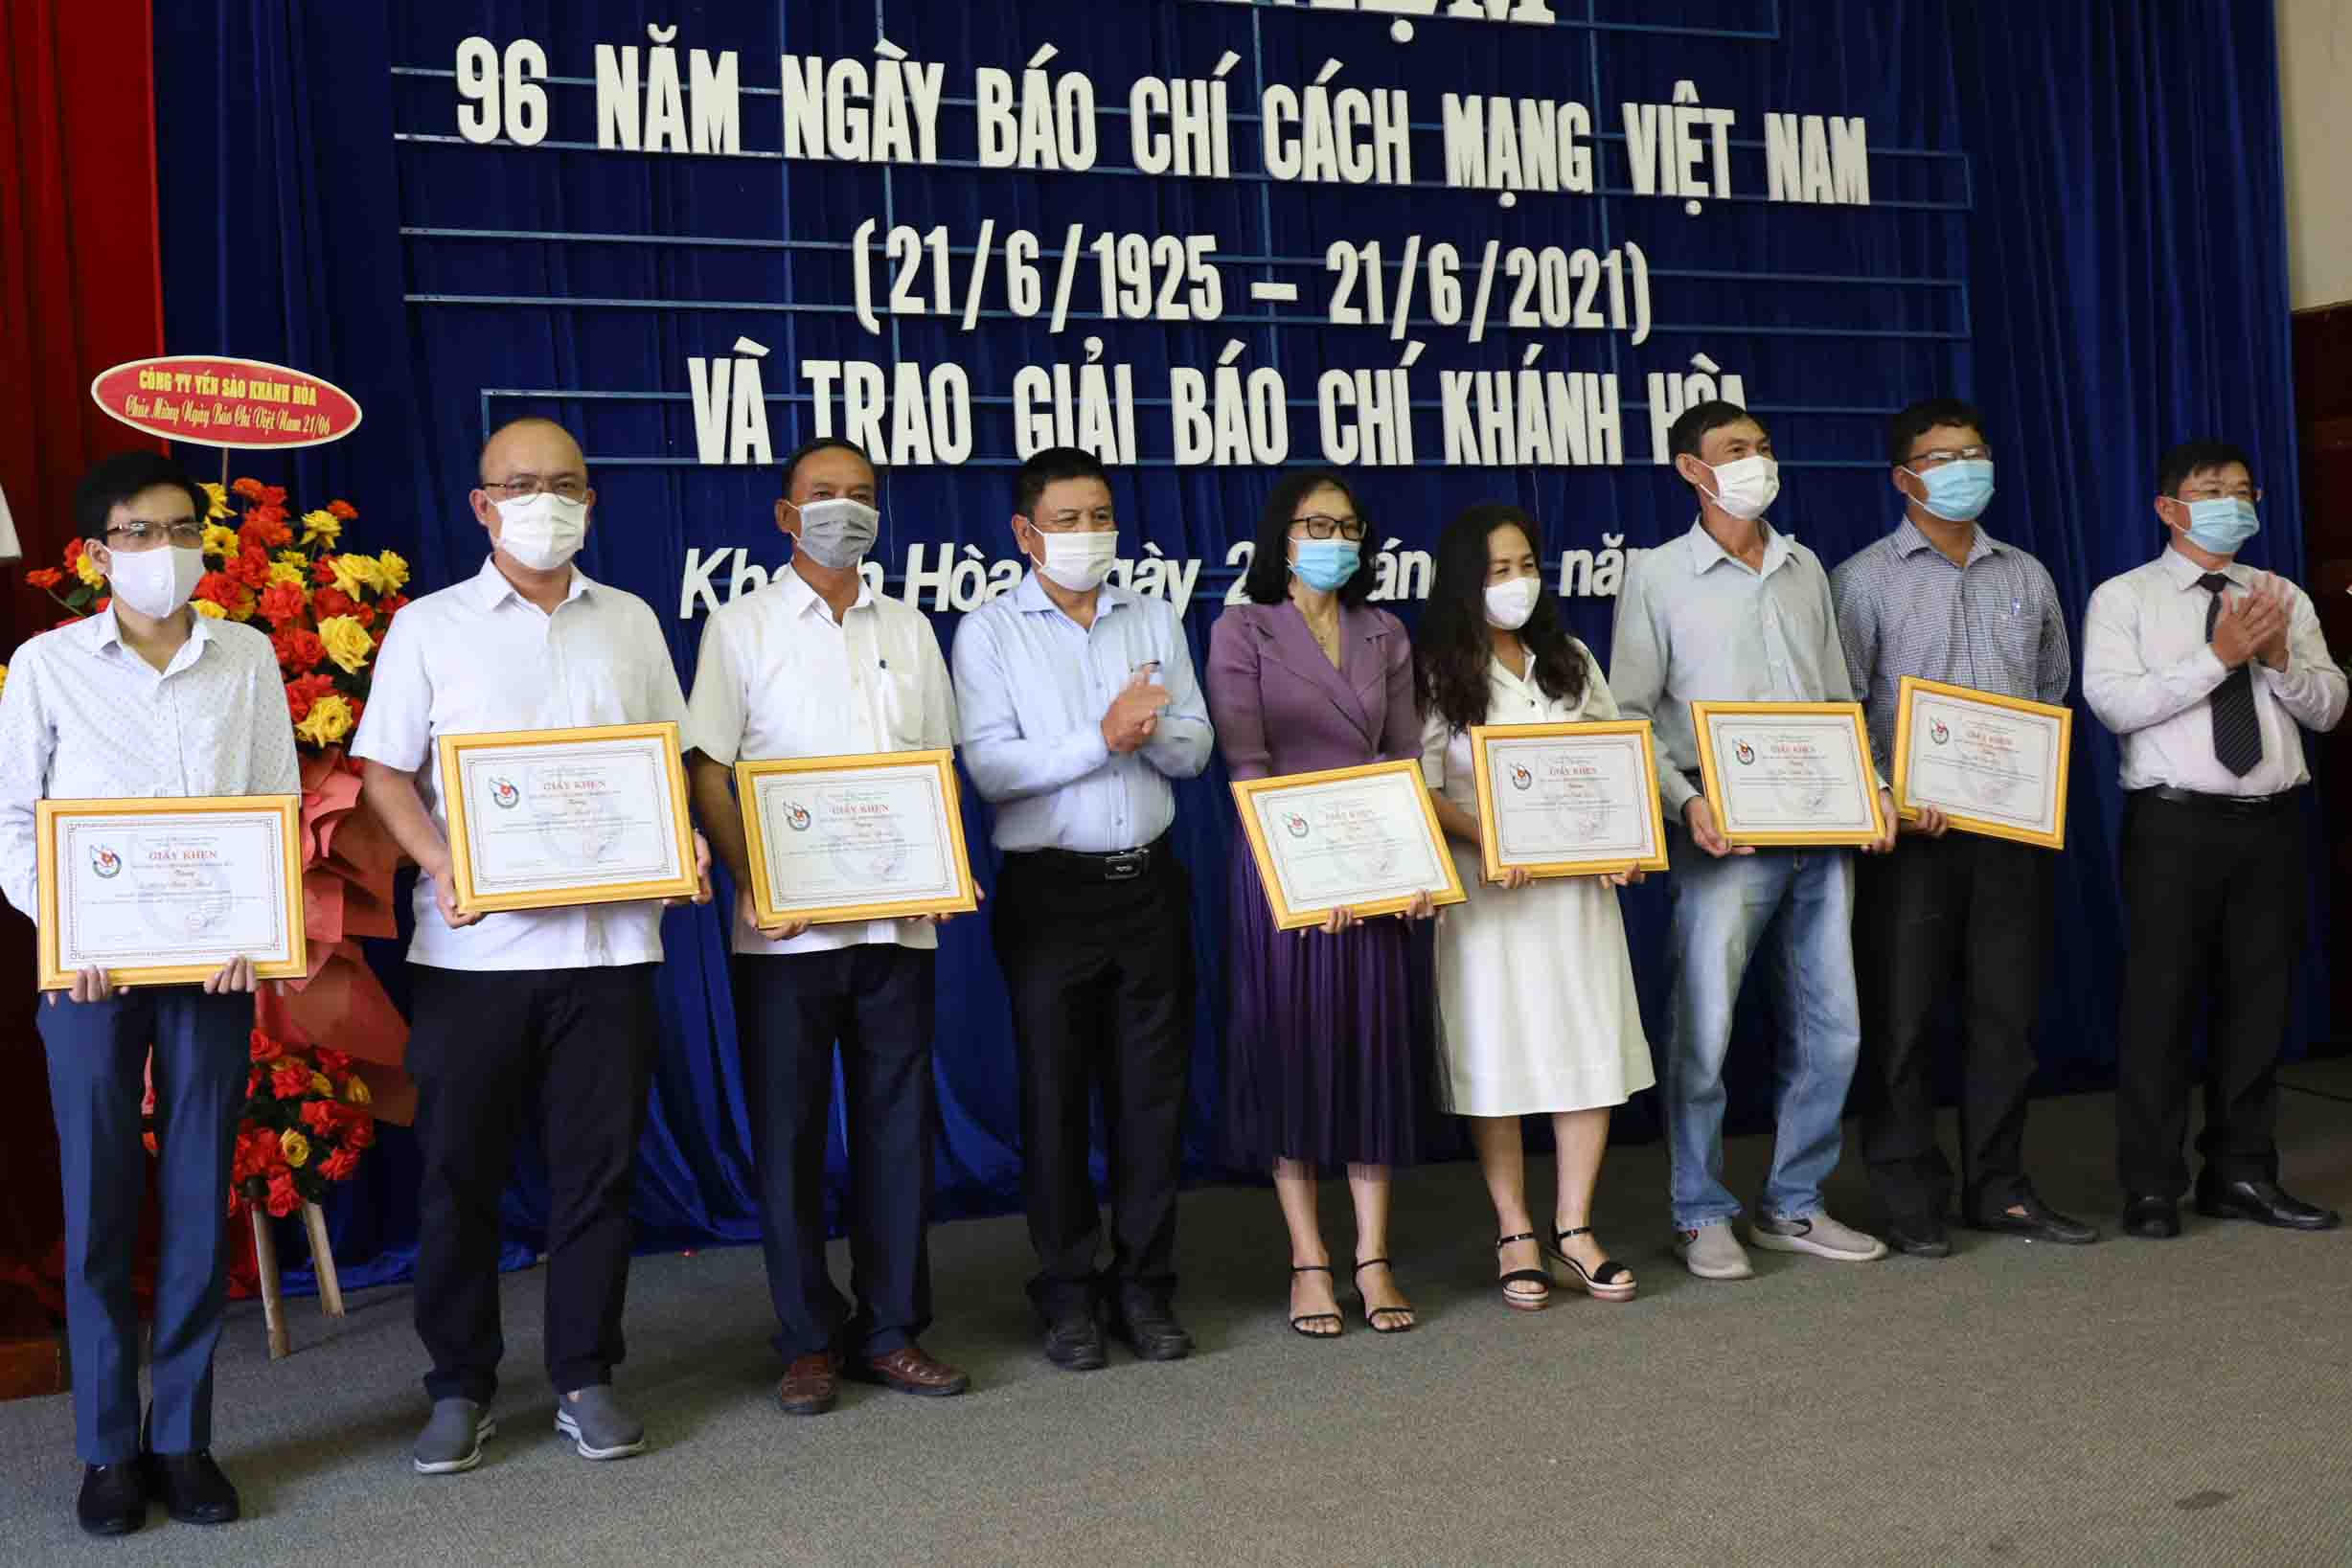 Leadership of Khanh Hoa Provincial Journalists' Association offering certificates of merit to outstanding members